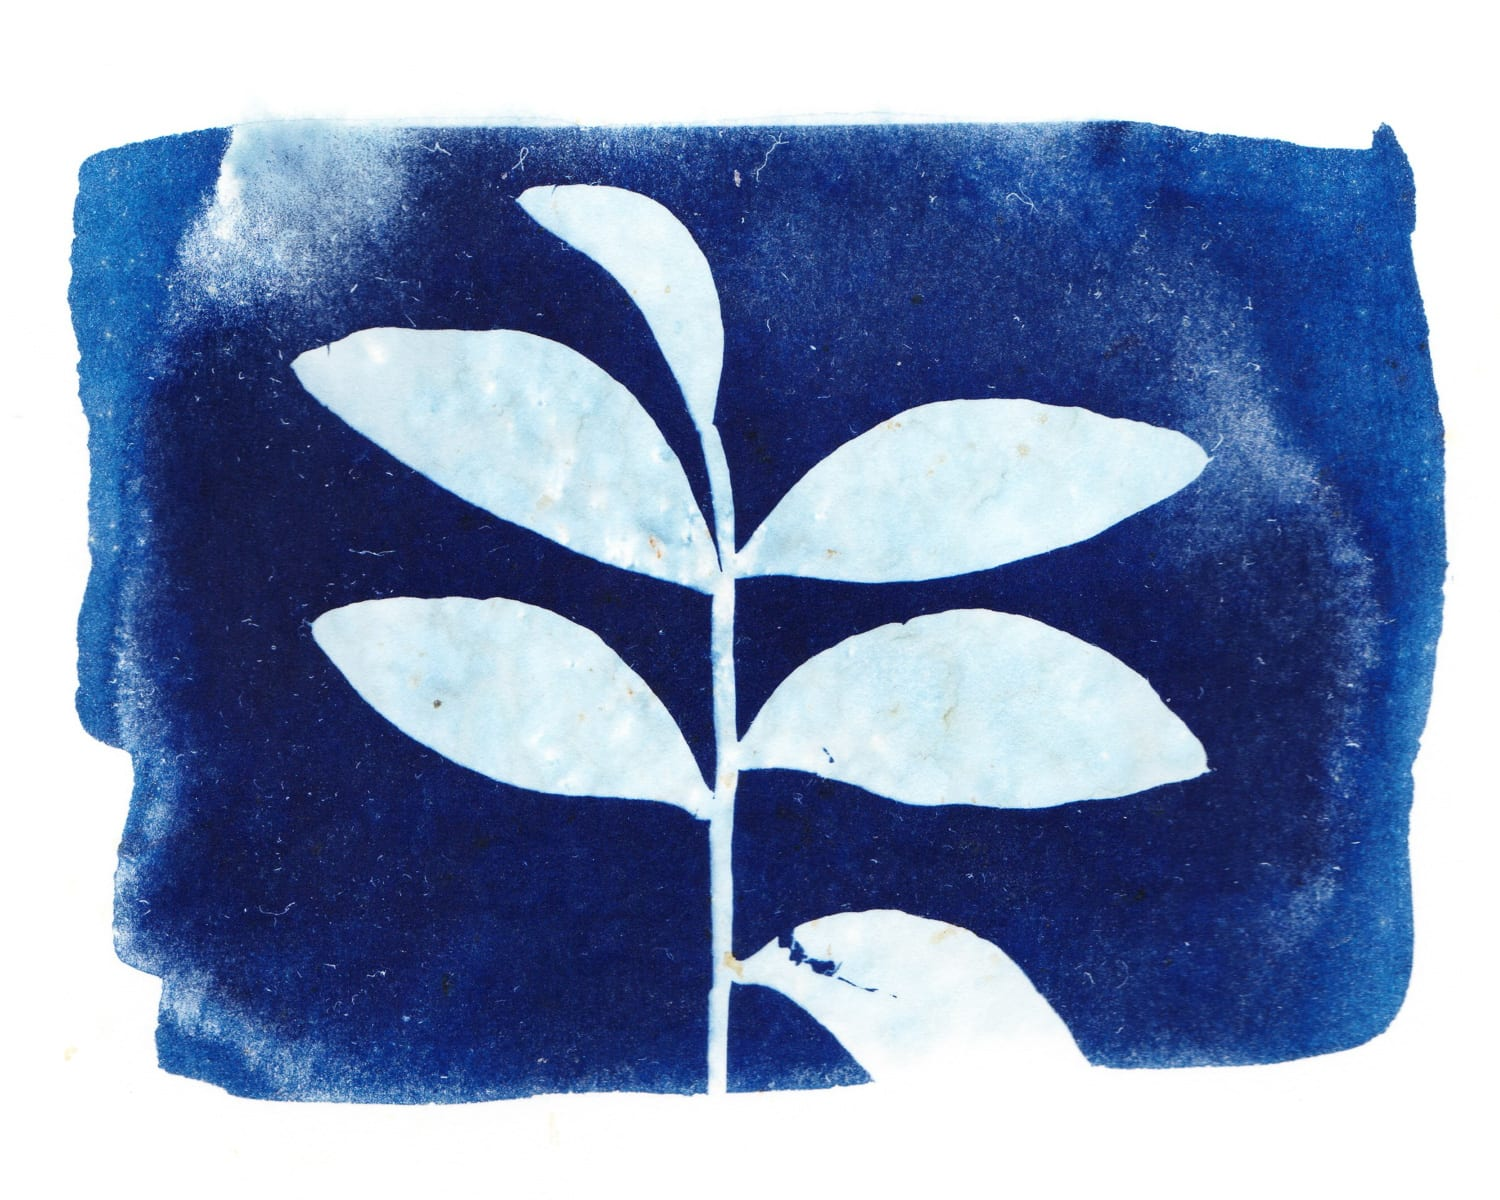 Photography and Art Camp for Kids 2020. Marin, San Francisco. Cyanotype print